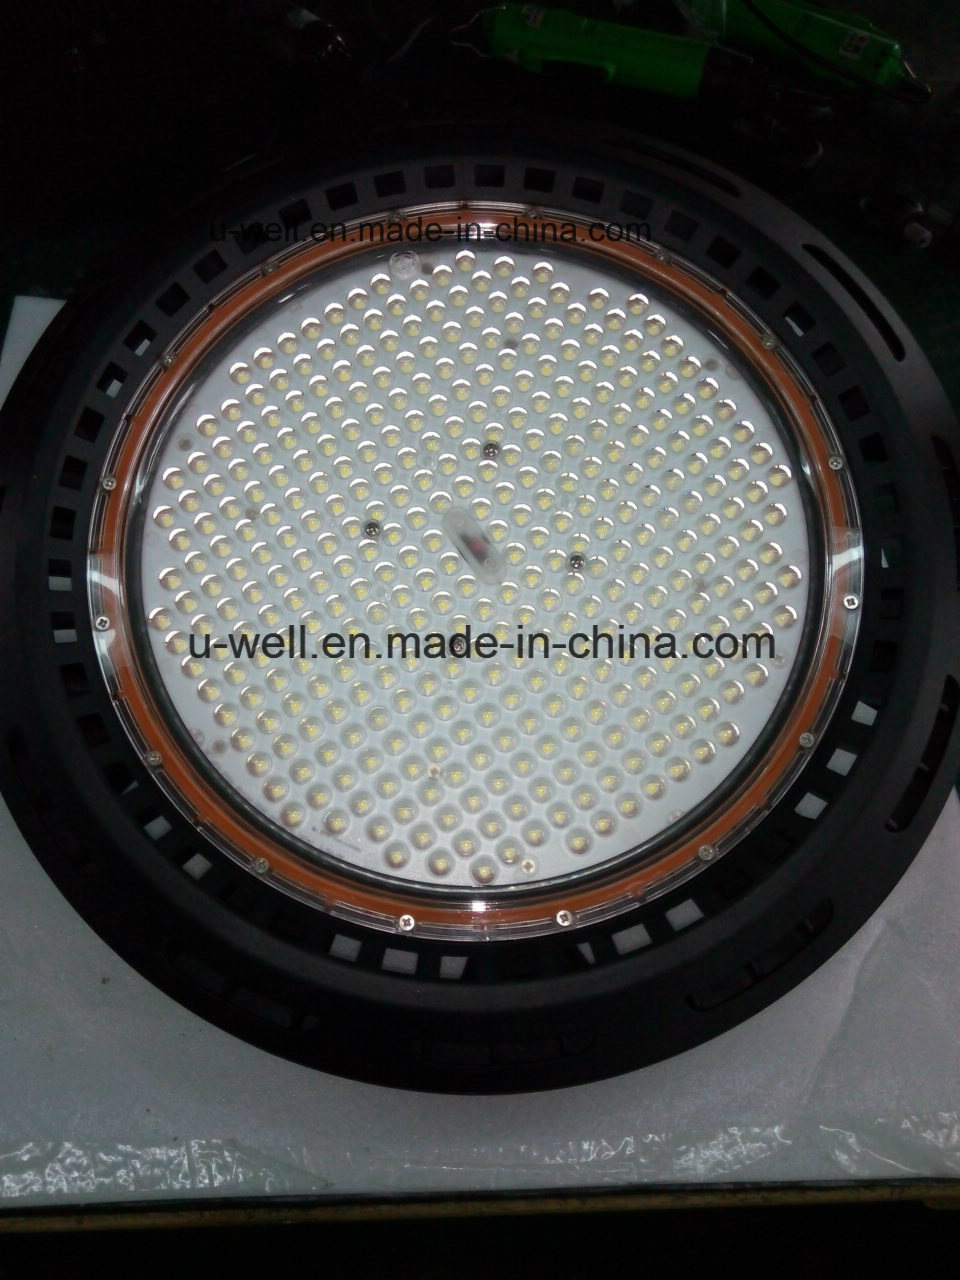 China Industrial UFO Highbay Lighting IP65 Waterproof 130lm/W 100W 160W 200W LED High Bay Light - China LED High Bay Light, UFO LED High Bay Light